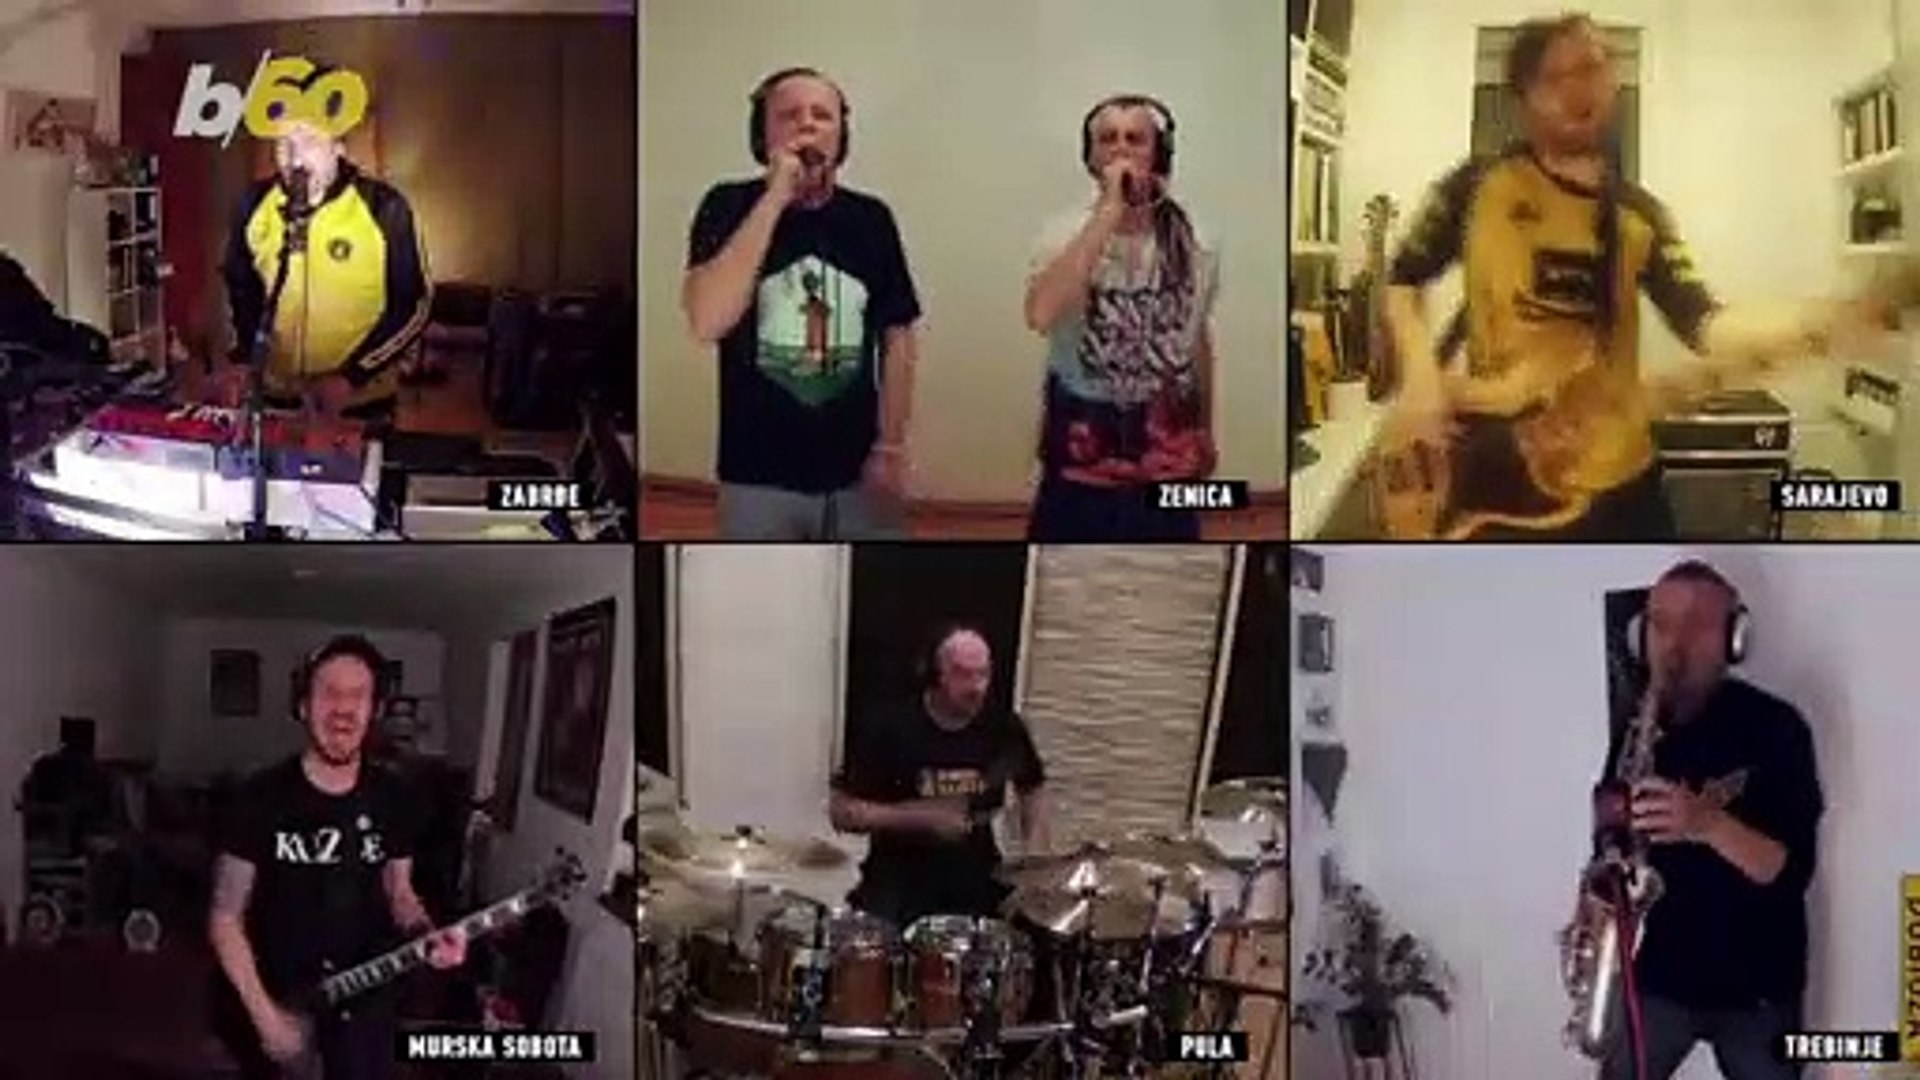 Bosnian Band Cheers Up Fans with Weekly Online 'Quarantine Show'